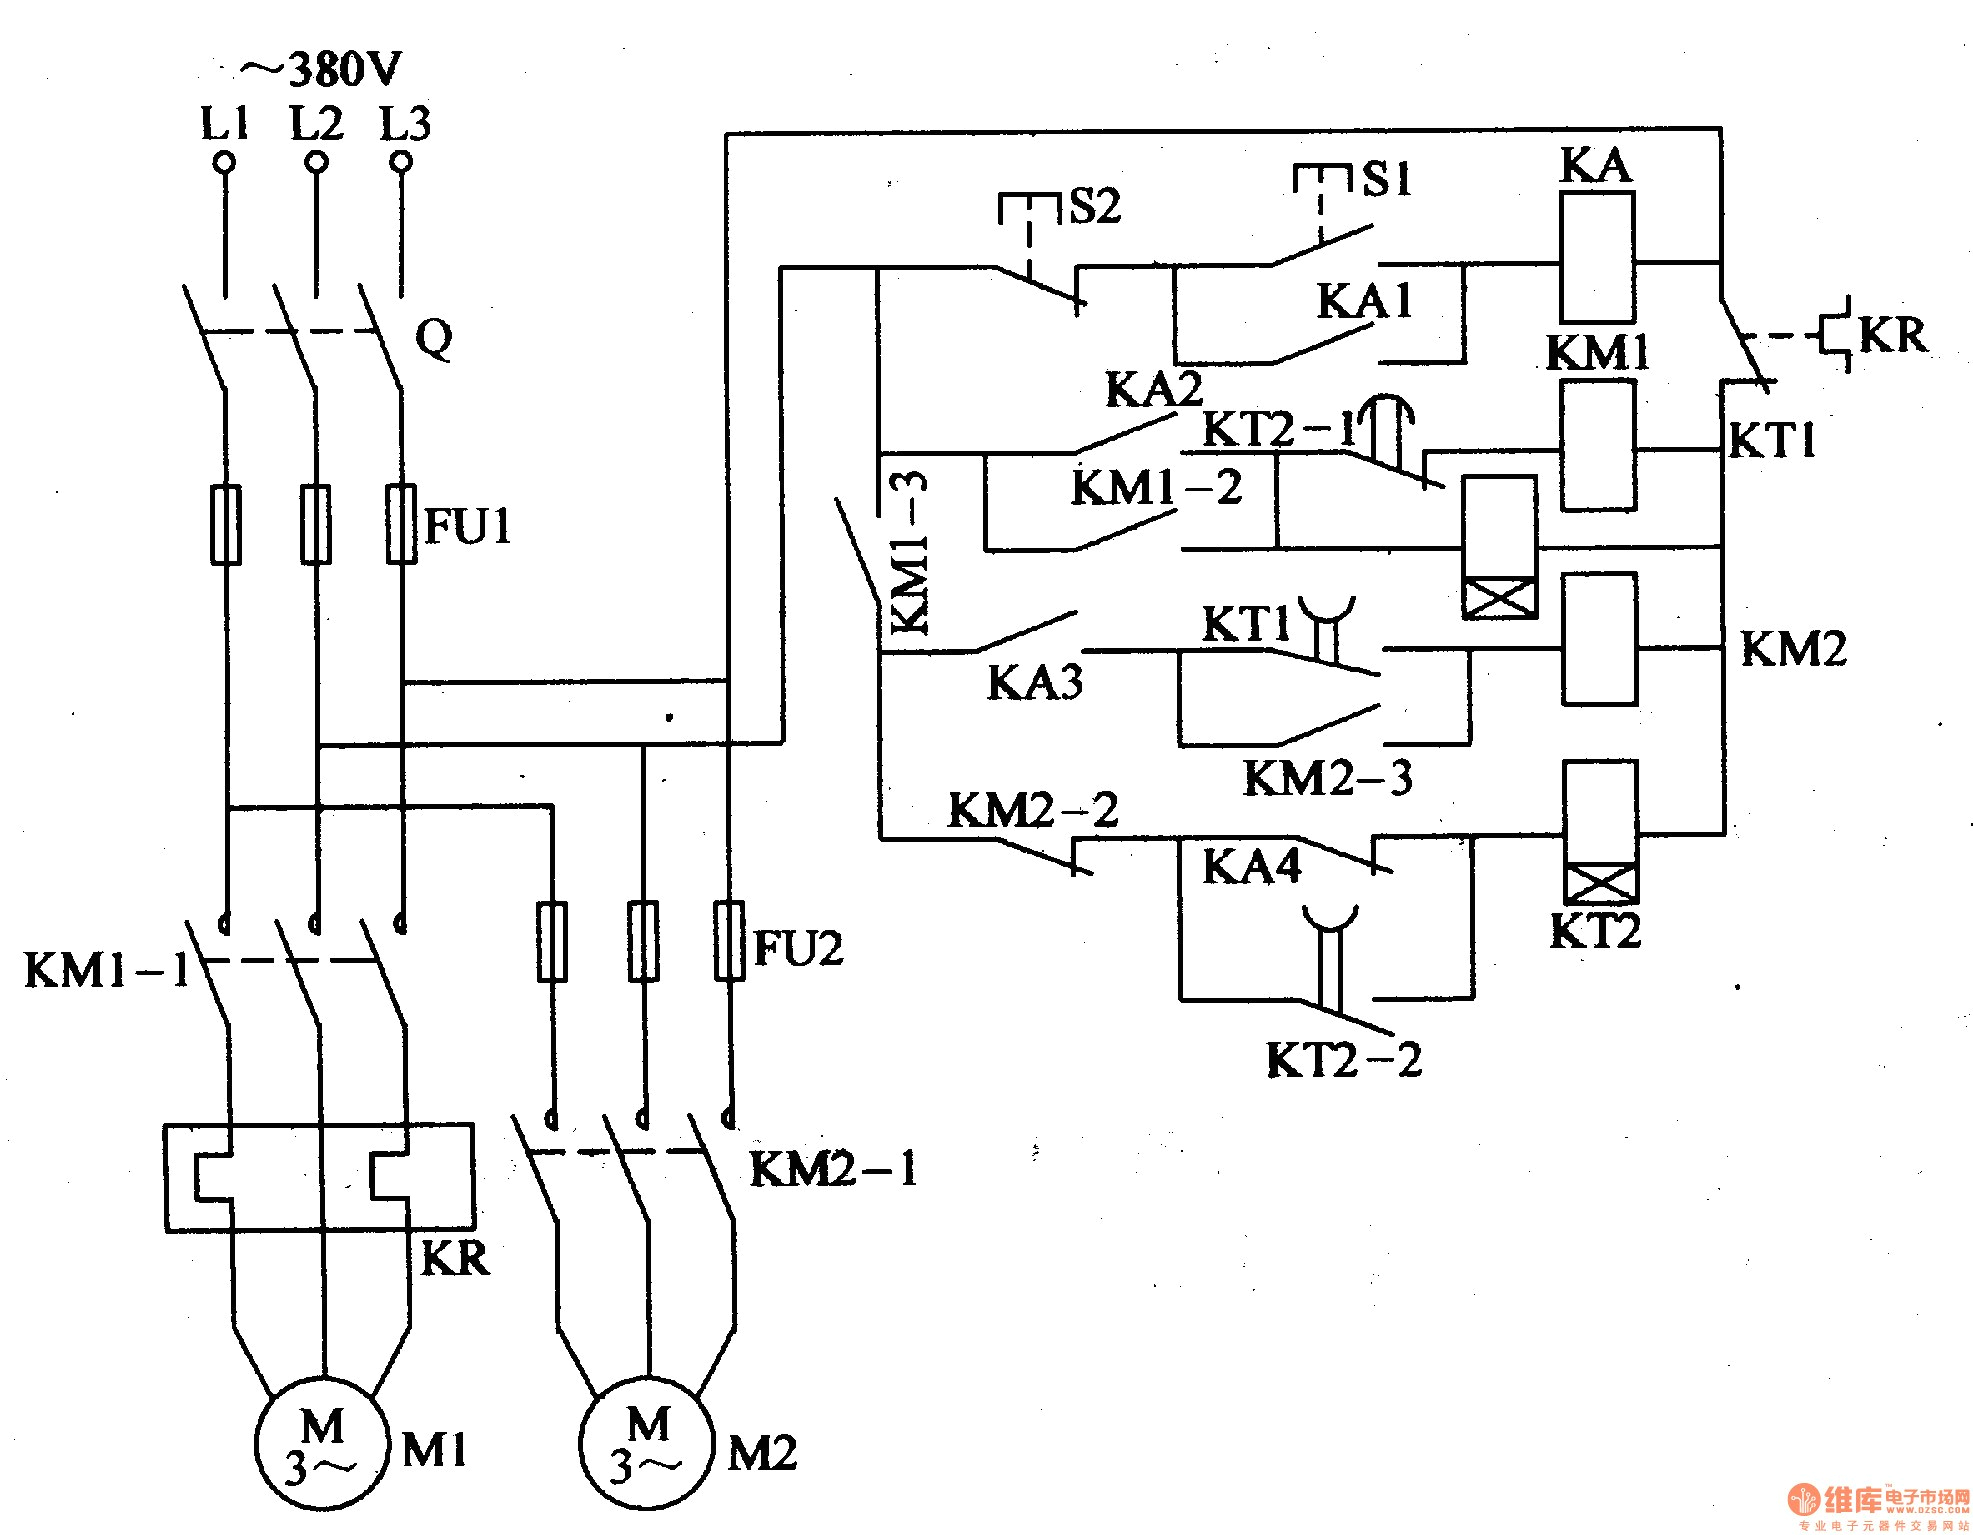 electrical control wiring books wiring diagram img plc control panel wiring diagram pdf control wiring books